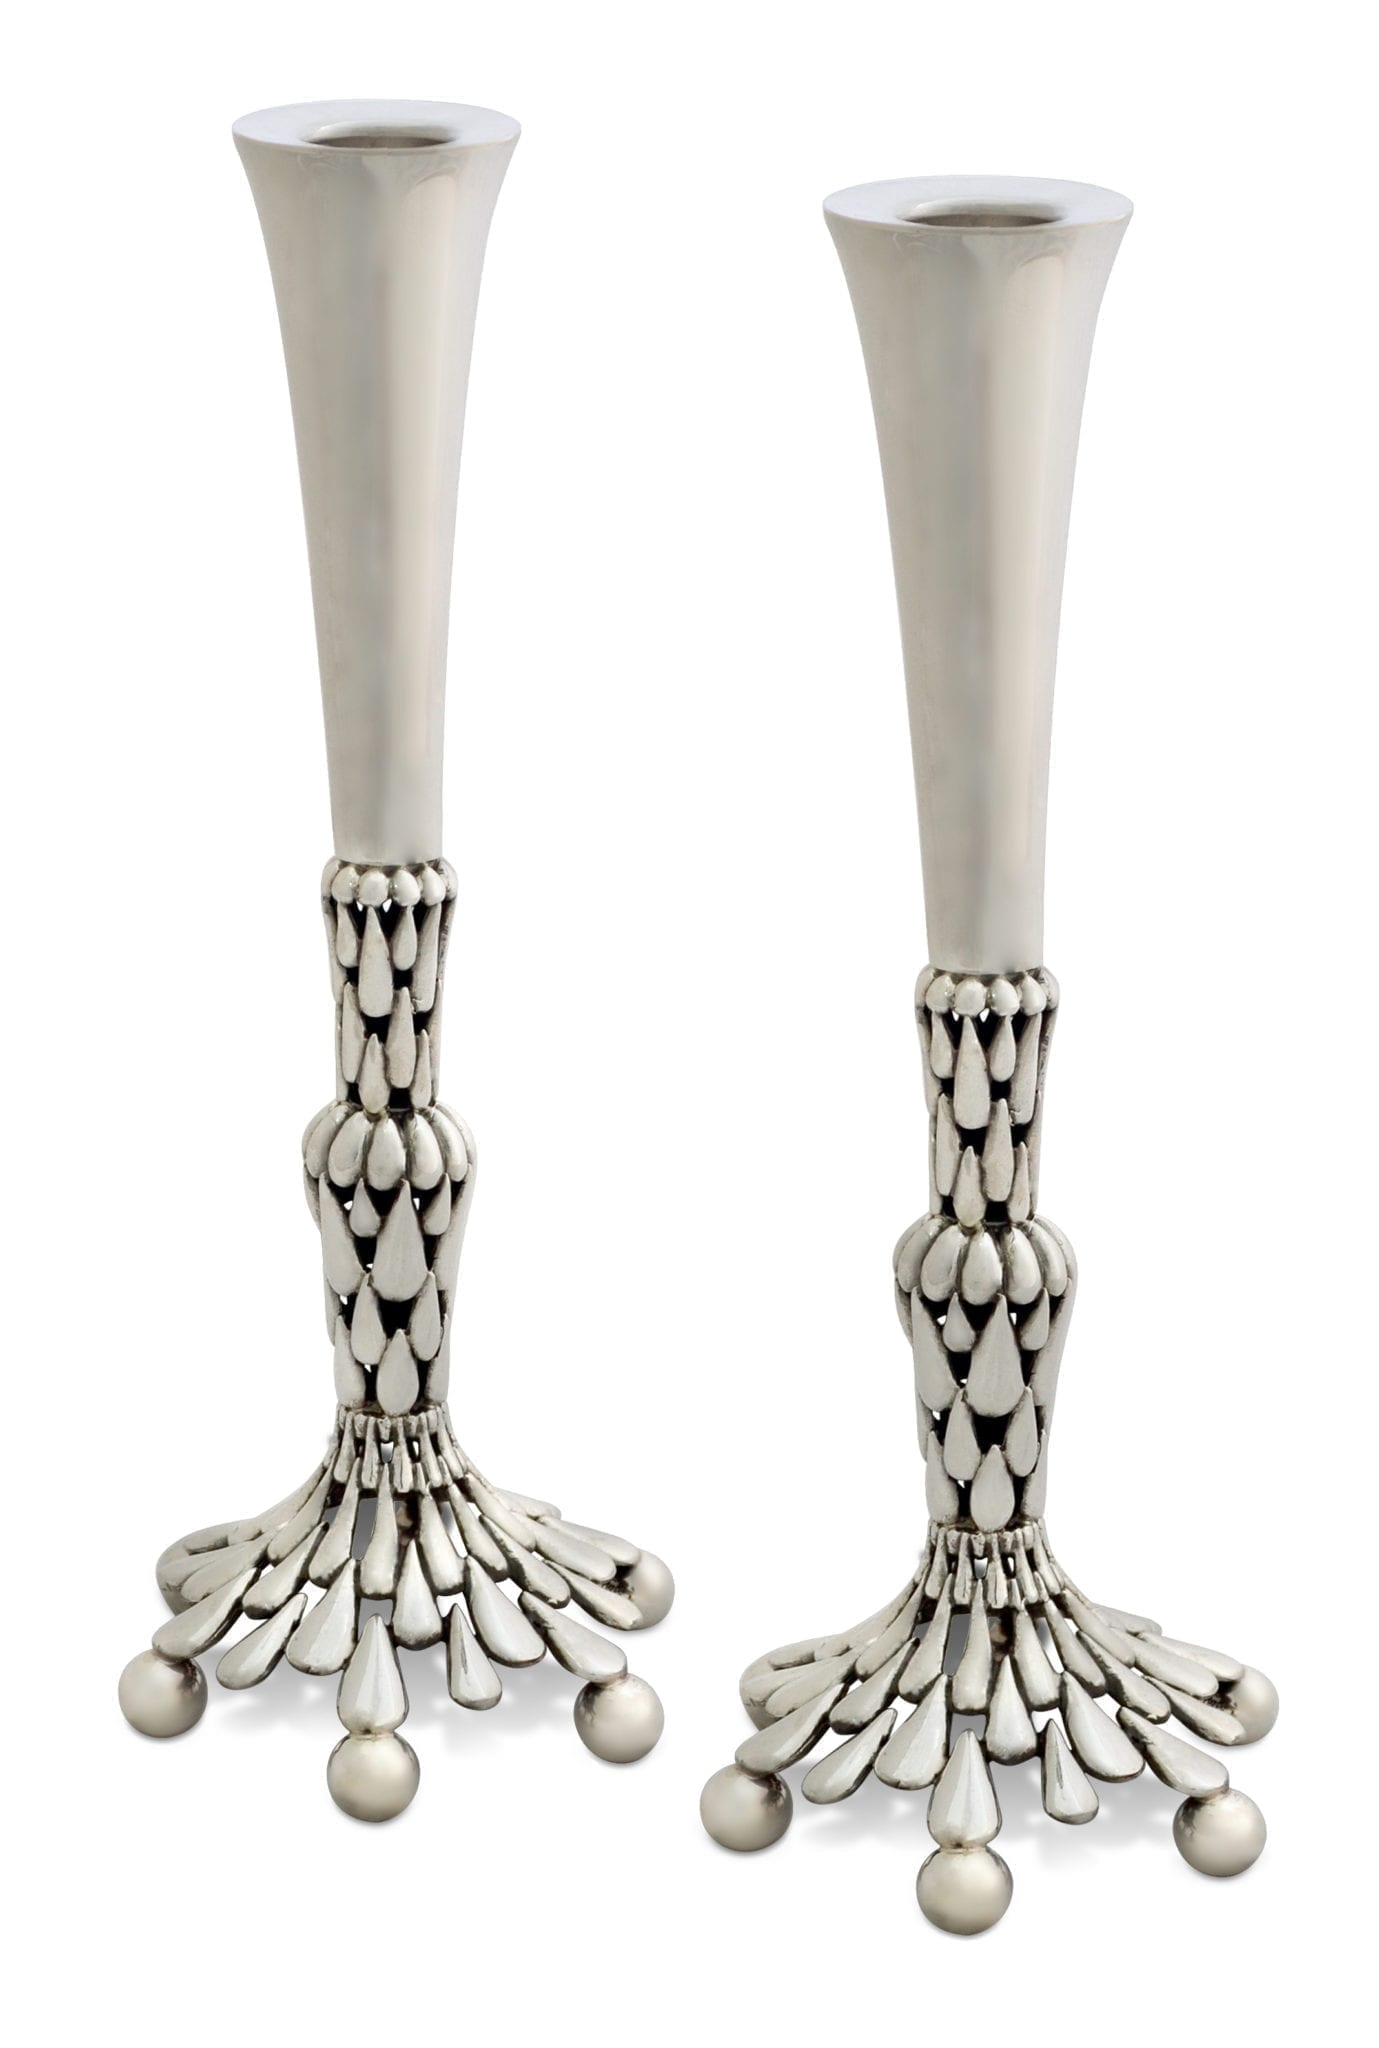 Grand, hand-carved sterling silver candlesticks. Shabbat Judaica made in Israel